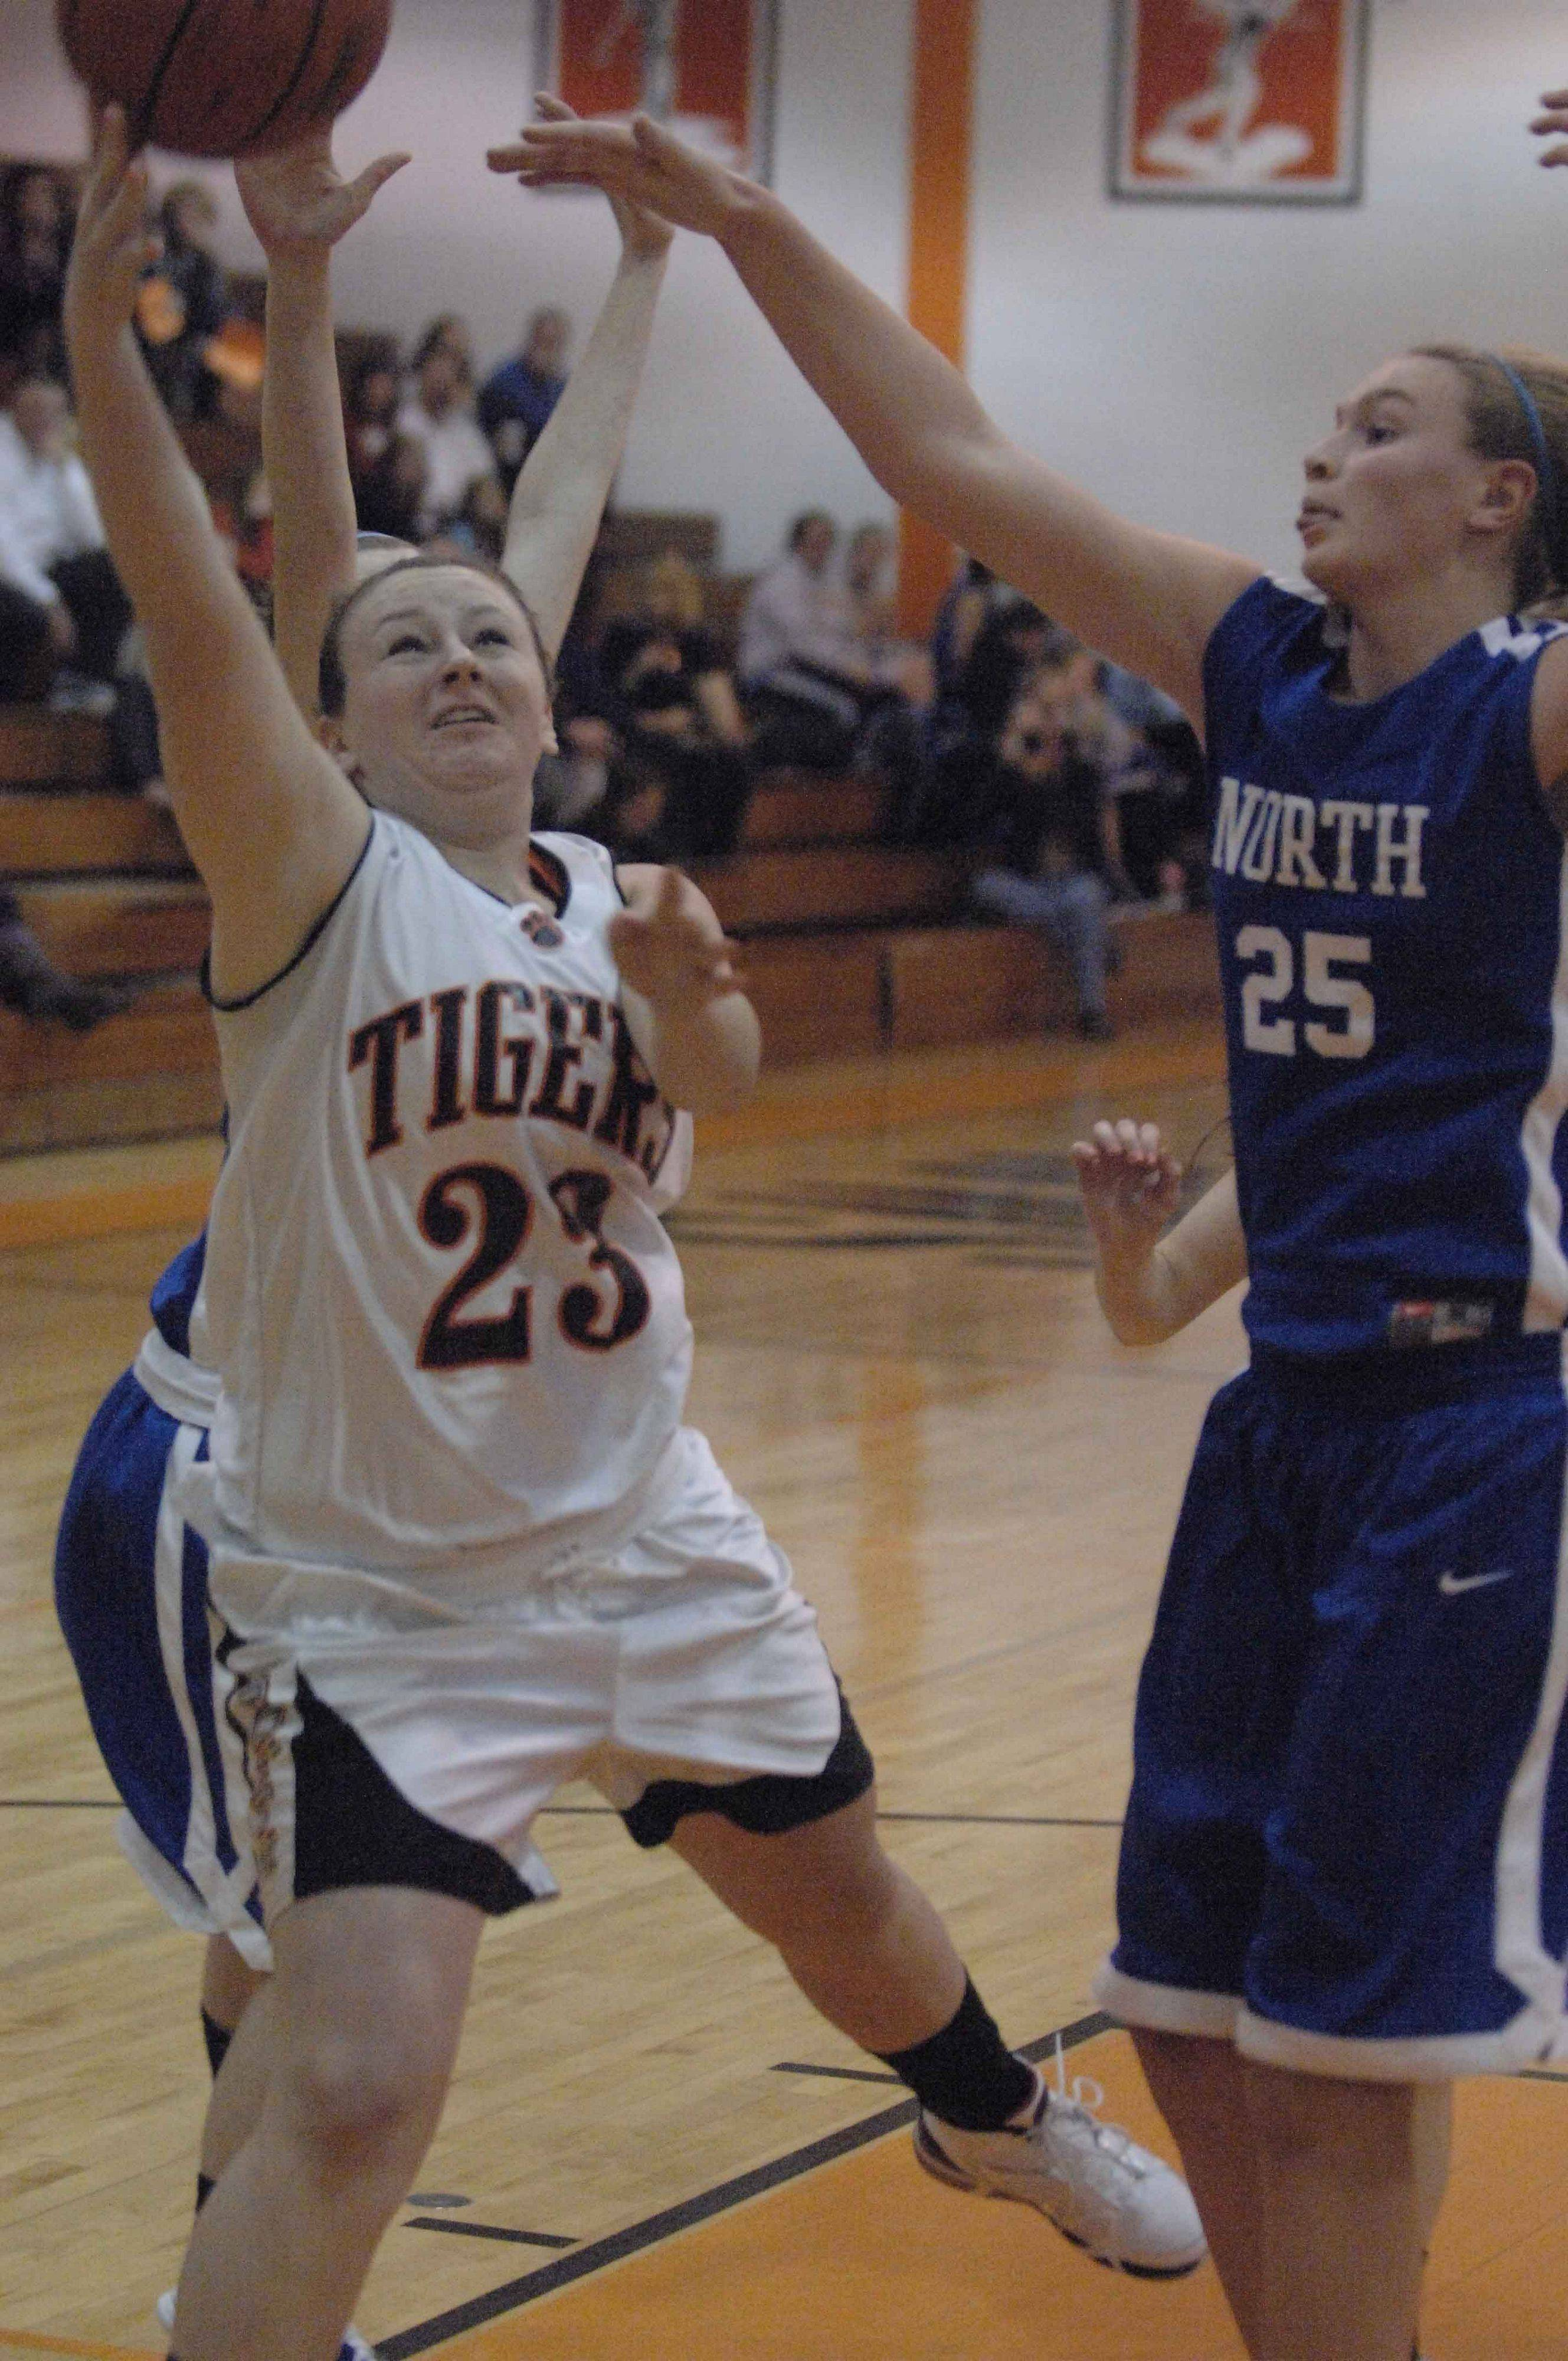 Annie Shain of Wheaton Warrenville South takes a shot while Mandy Traversa of Wheaton North tries to block.